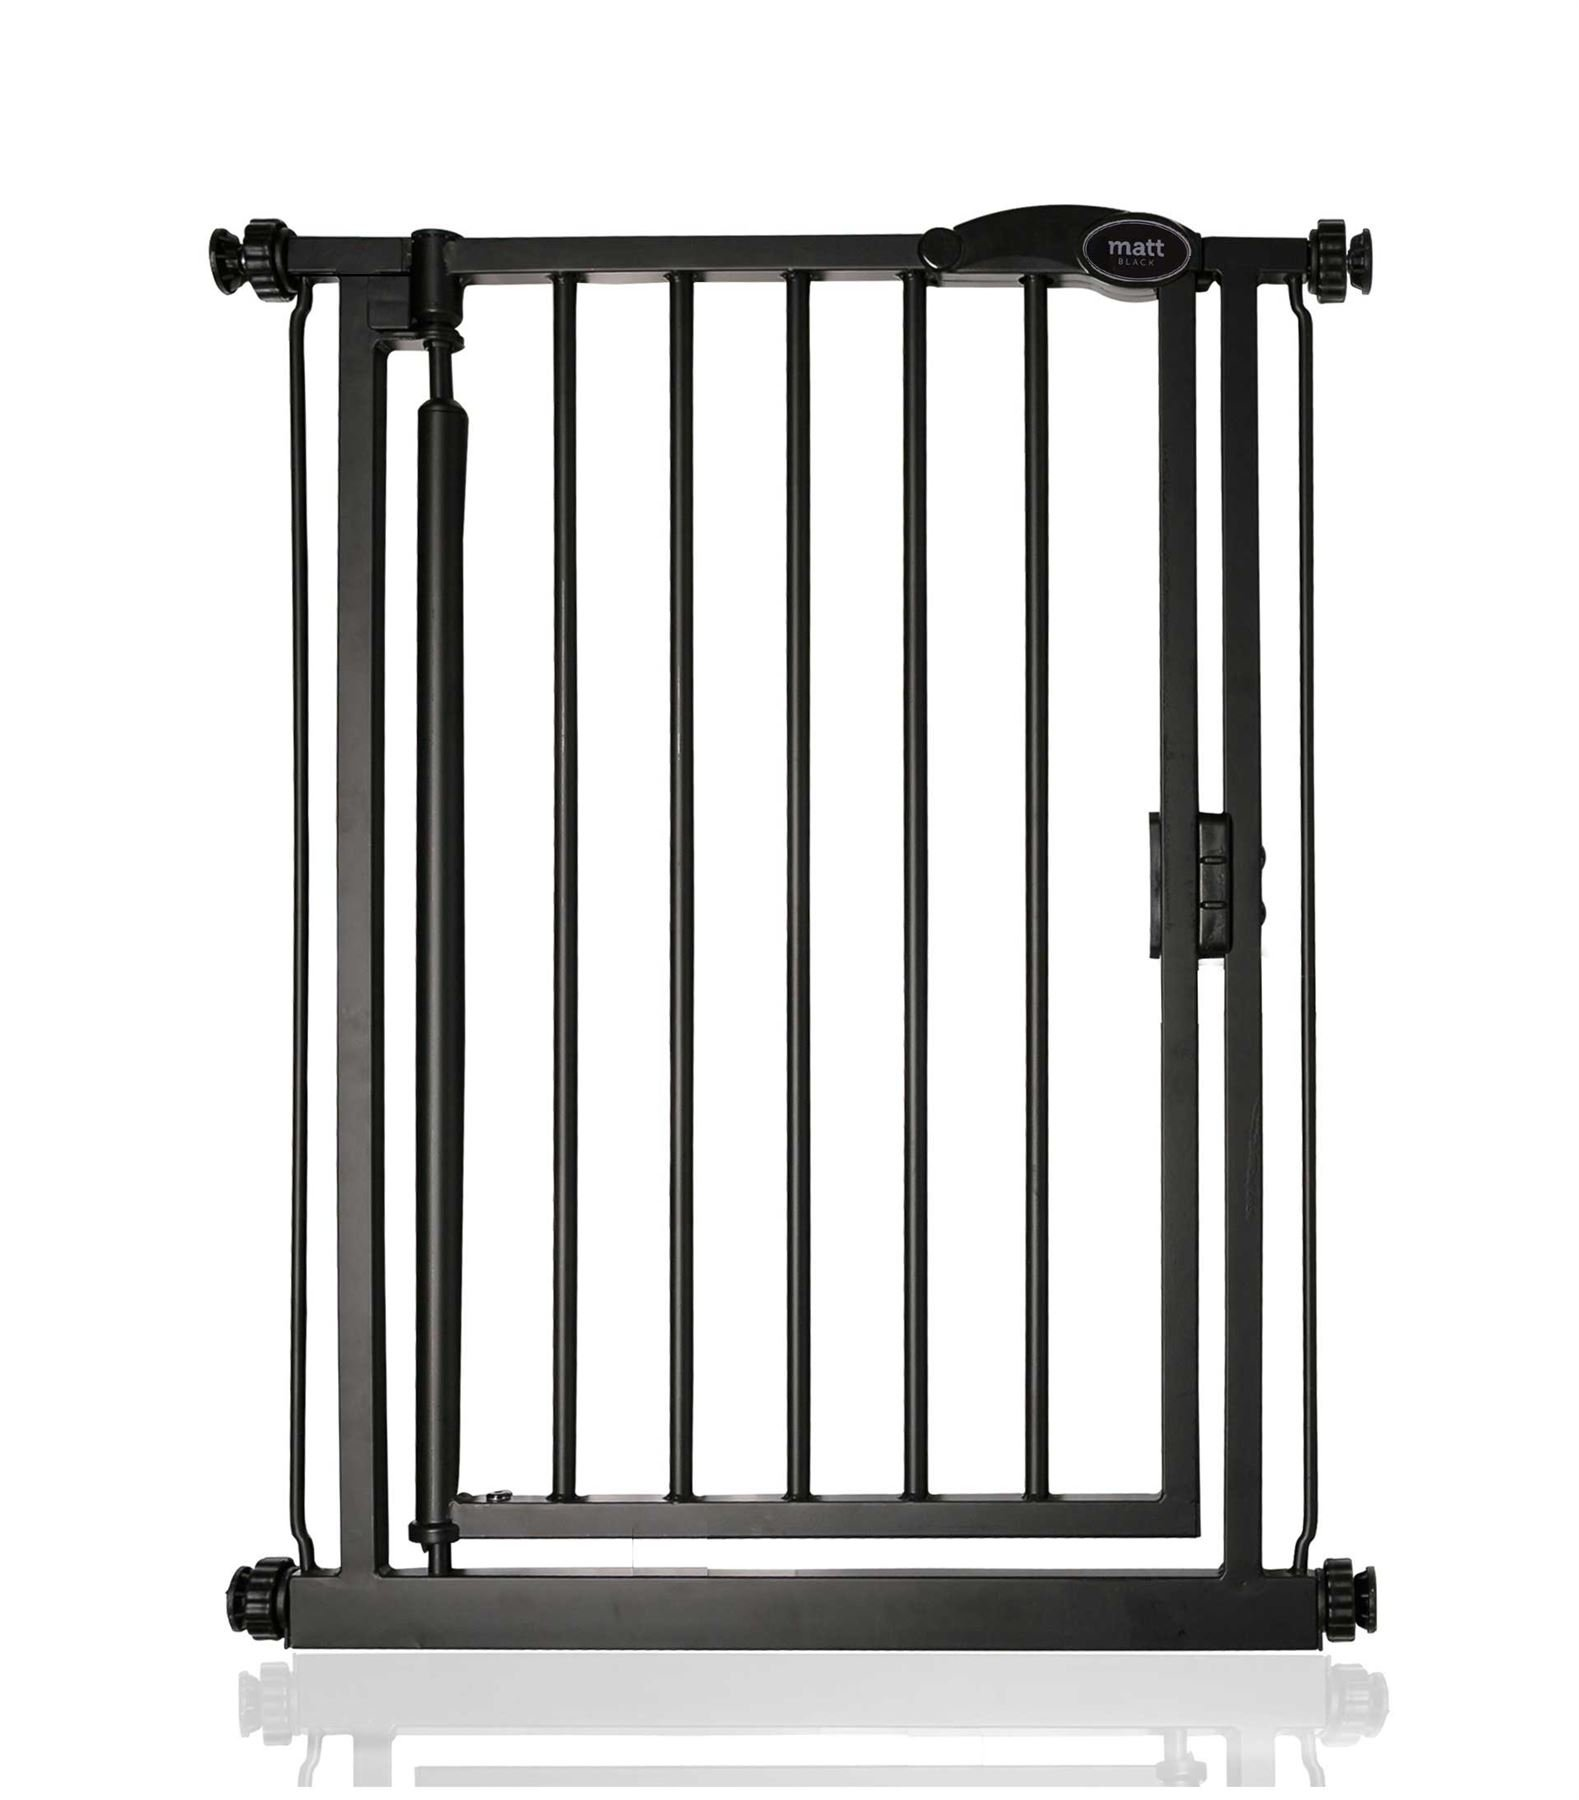 Safetots Auto Close Baby Gate Matt Black Range (61cm - 66.5cm) Safetots Fits openings from 61cm to 66.5cm Pressure fitted Stair Gate with Matt Black Finish One-handed operation with auto close function 1